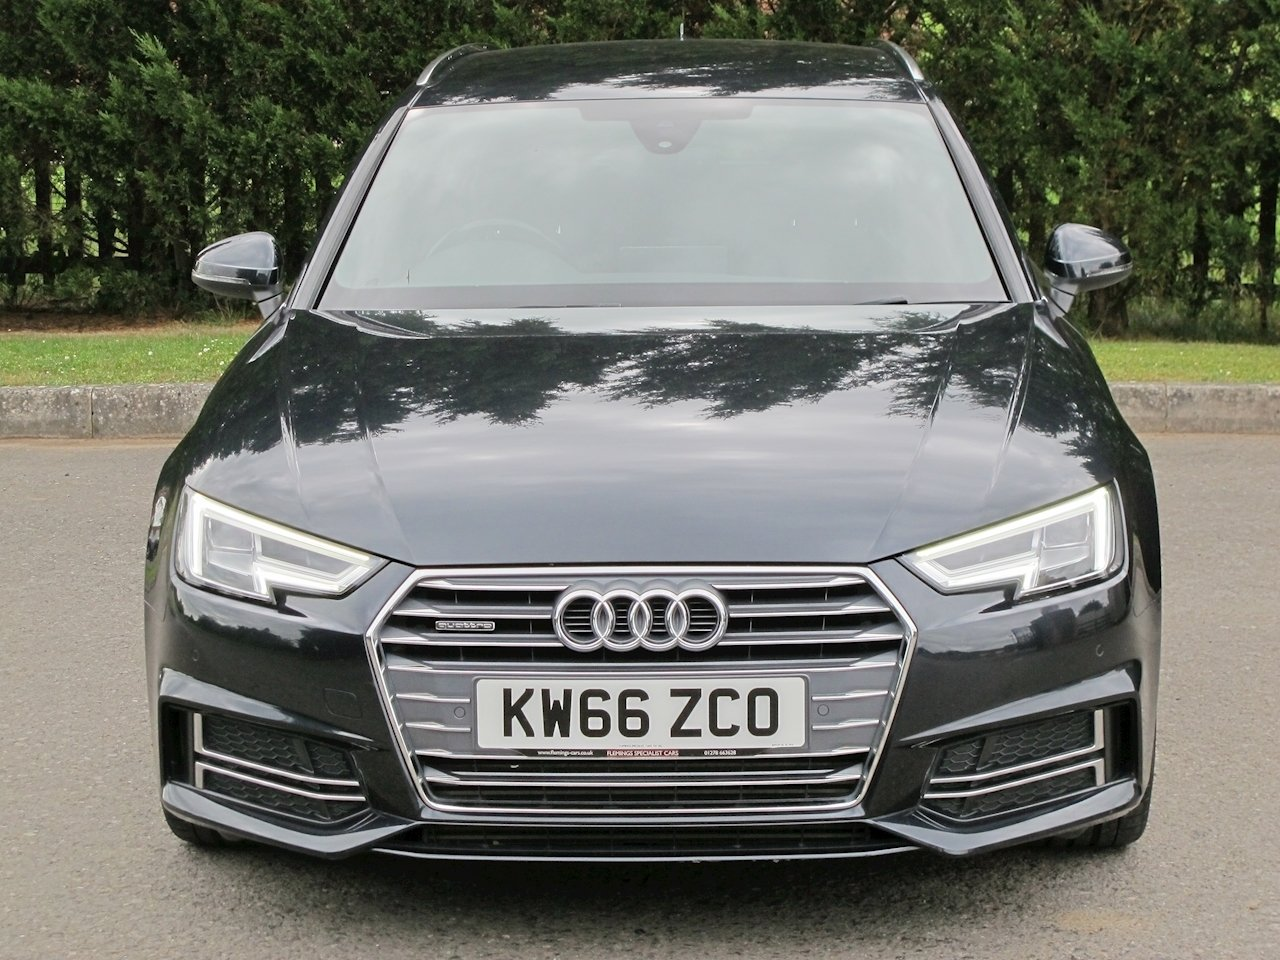 2017 Audi A4 Avant 3.0TDI 272PS quattro S Line S-Tronic For Sale (picture 2 of 6)